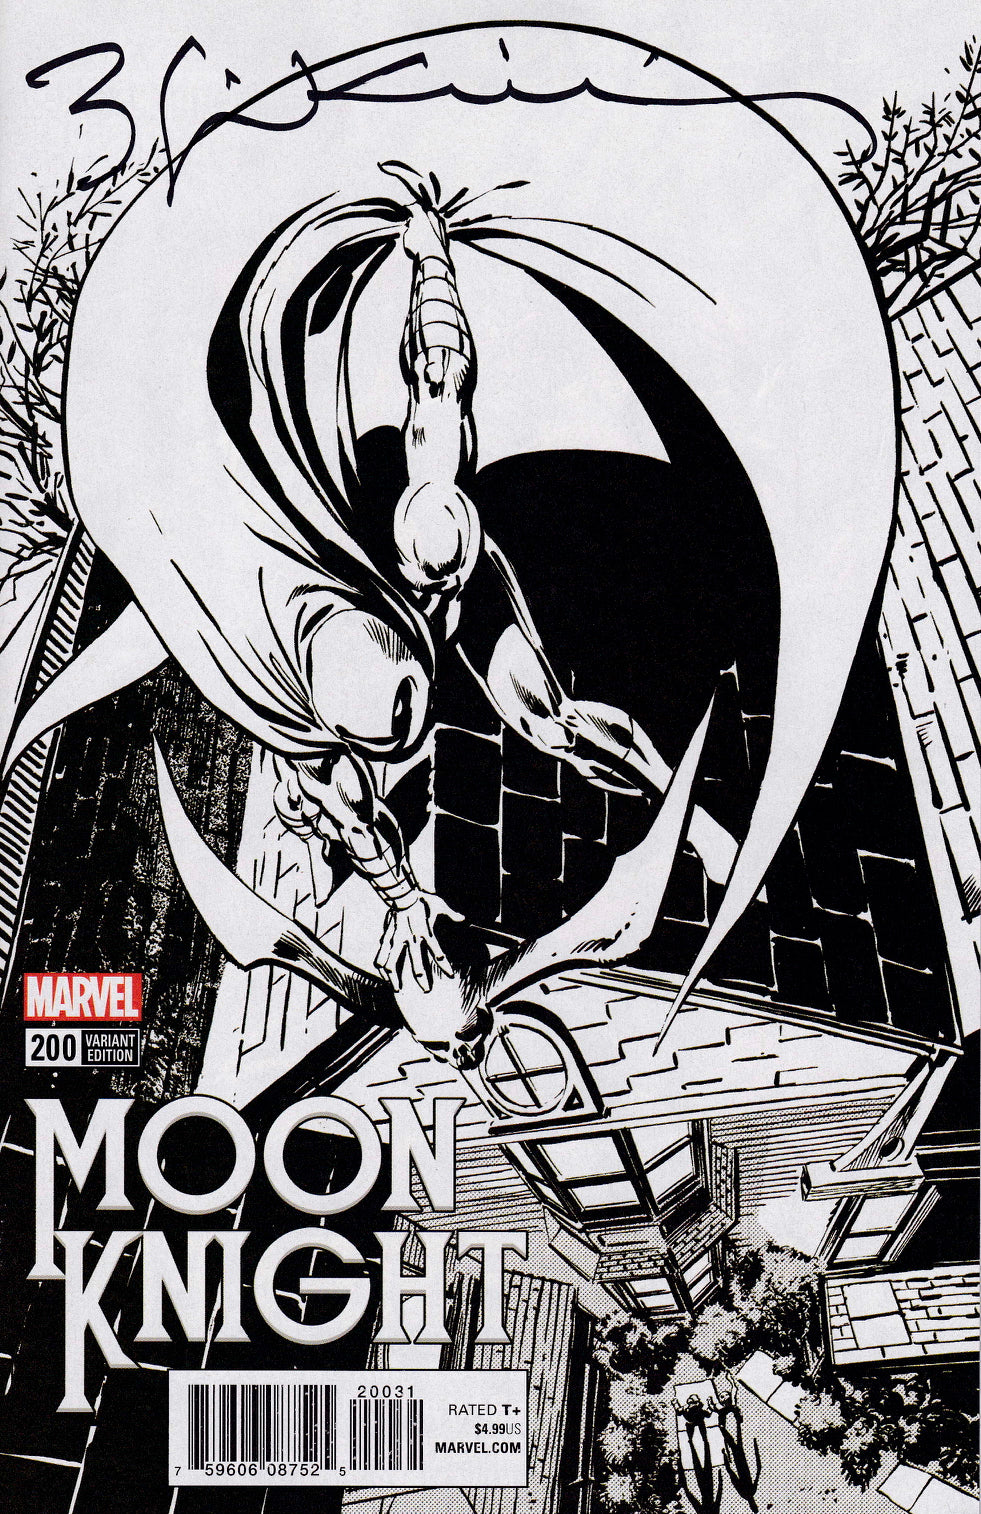 Moon Knight #200 Sienkiewicz Remastered BW Variant